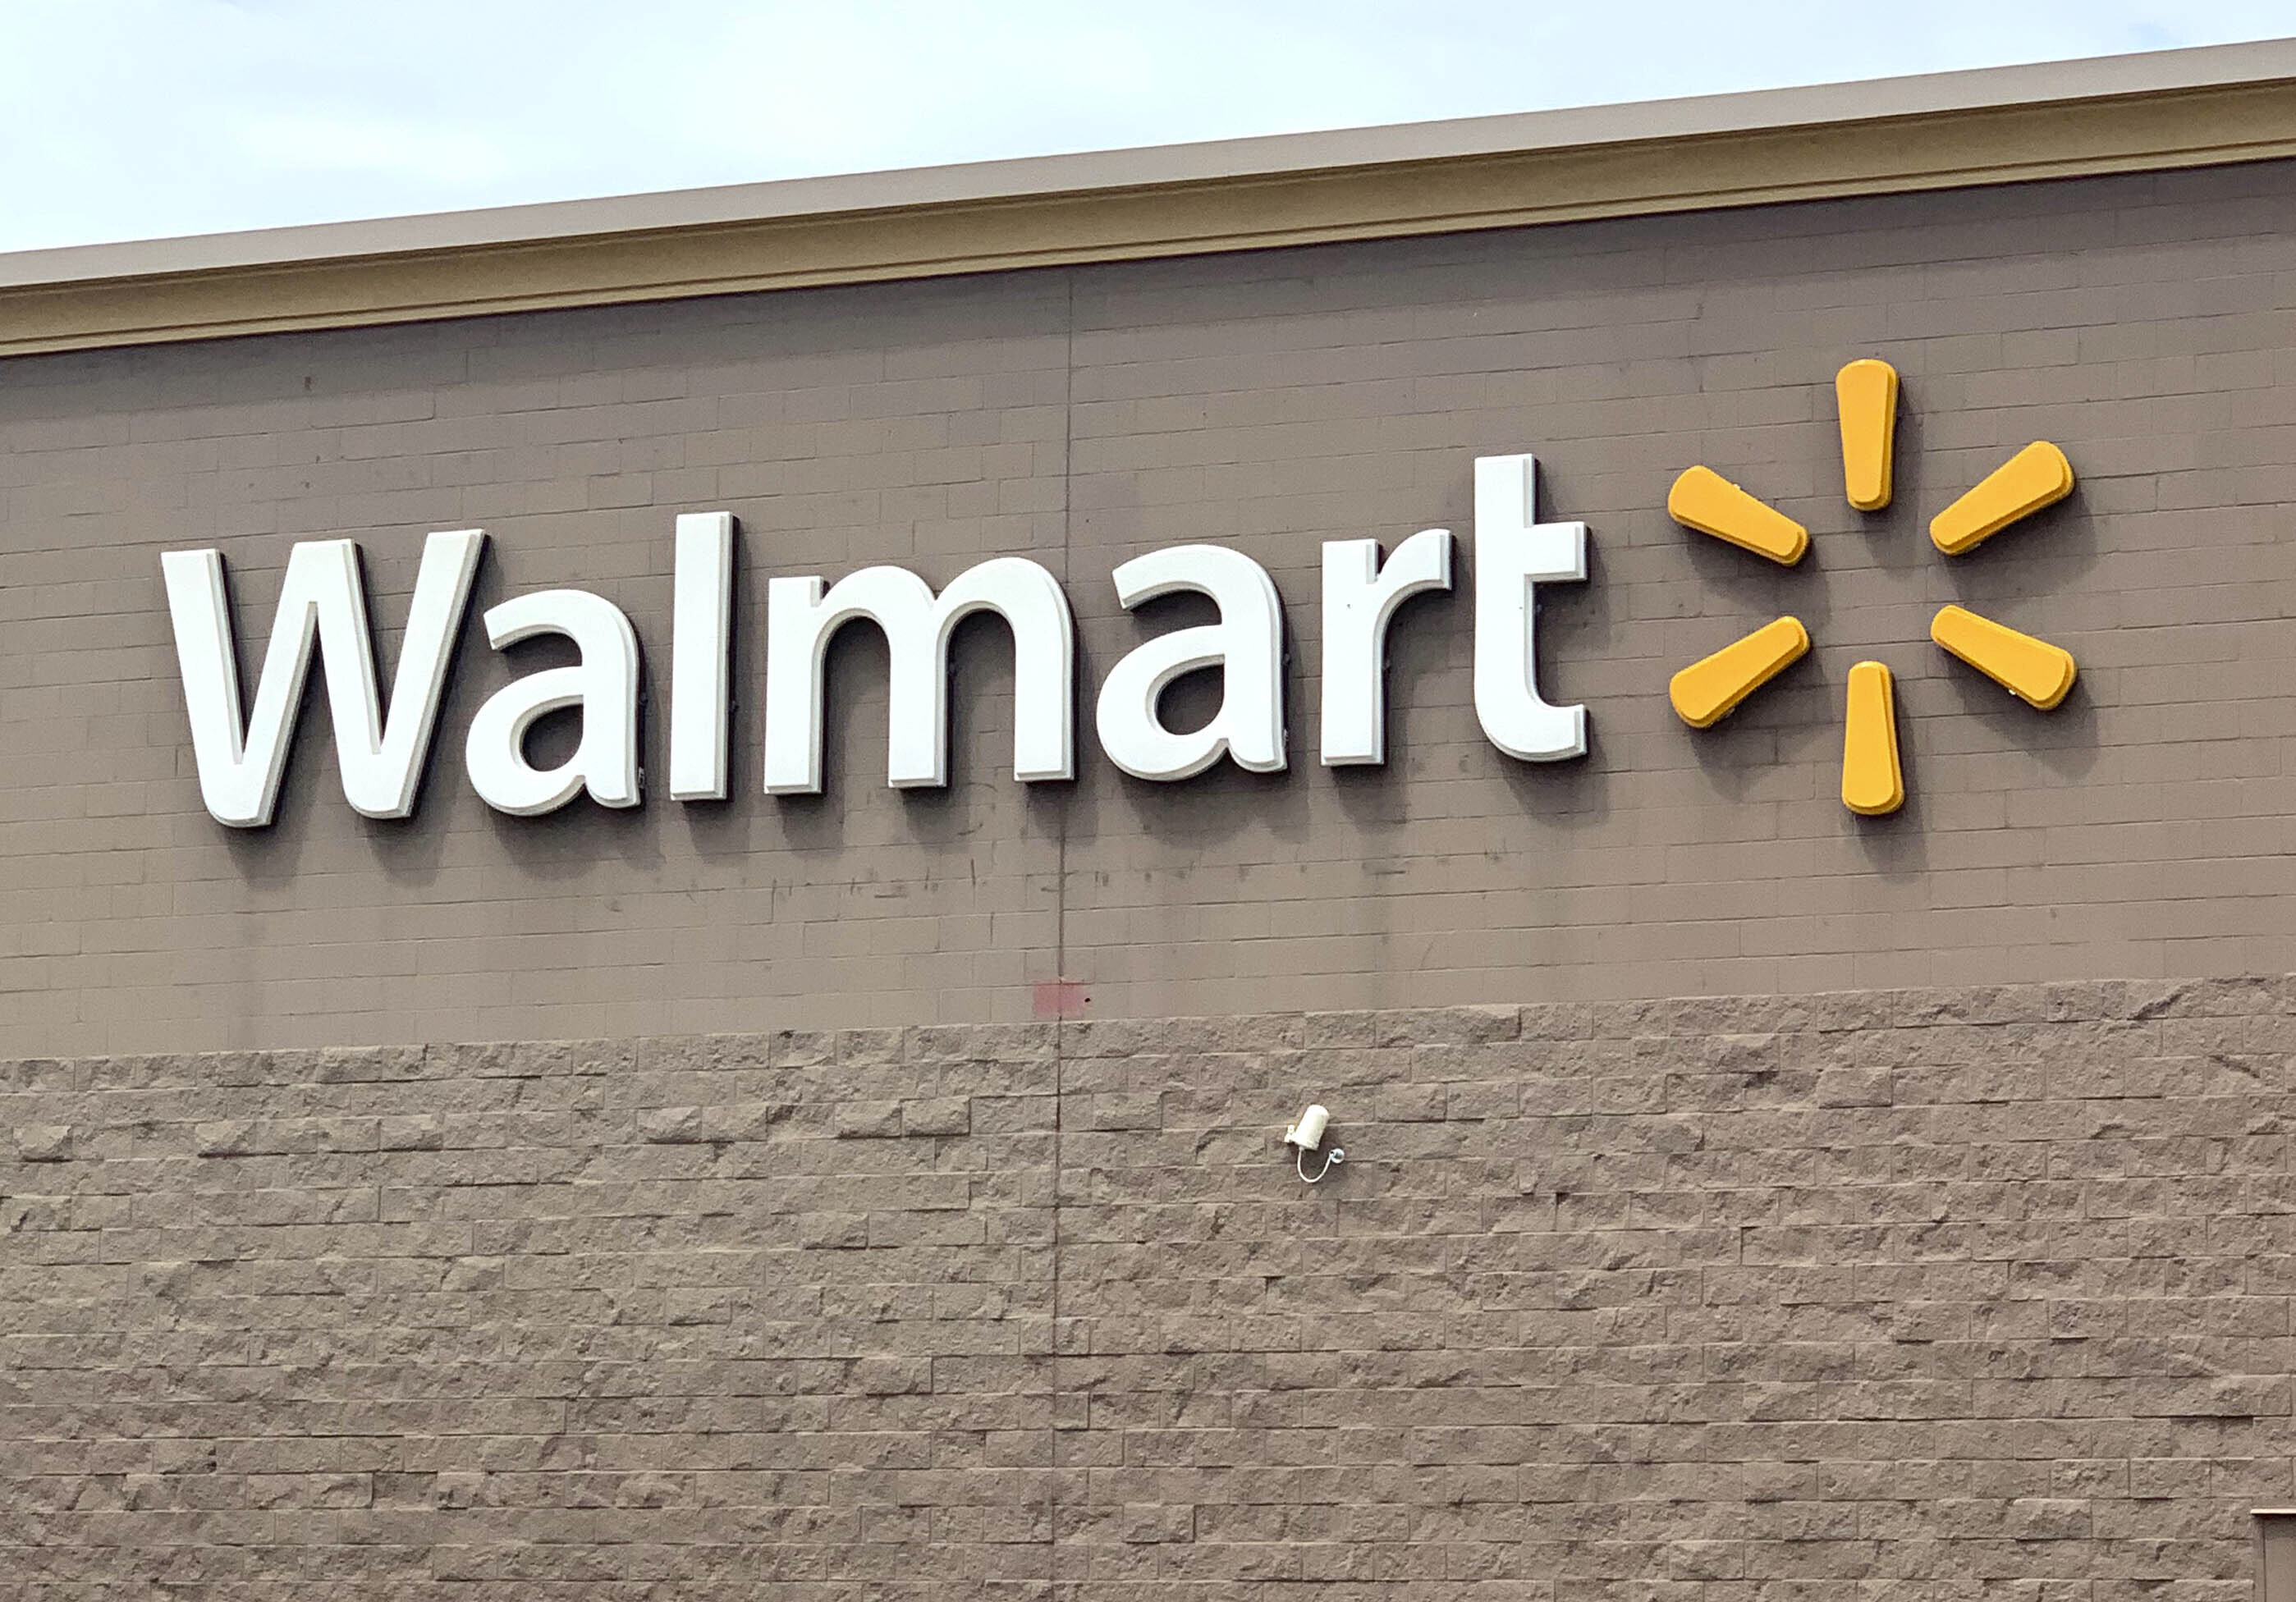 Walmart said it is planning to invest in U.S. manufacturing.